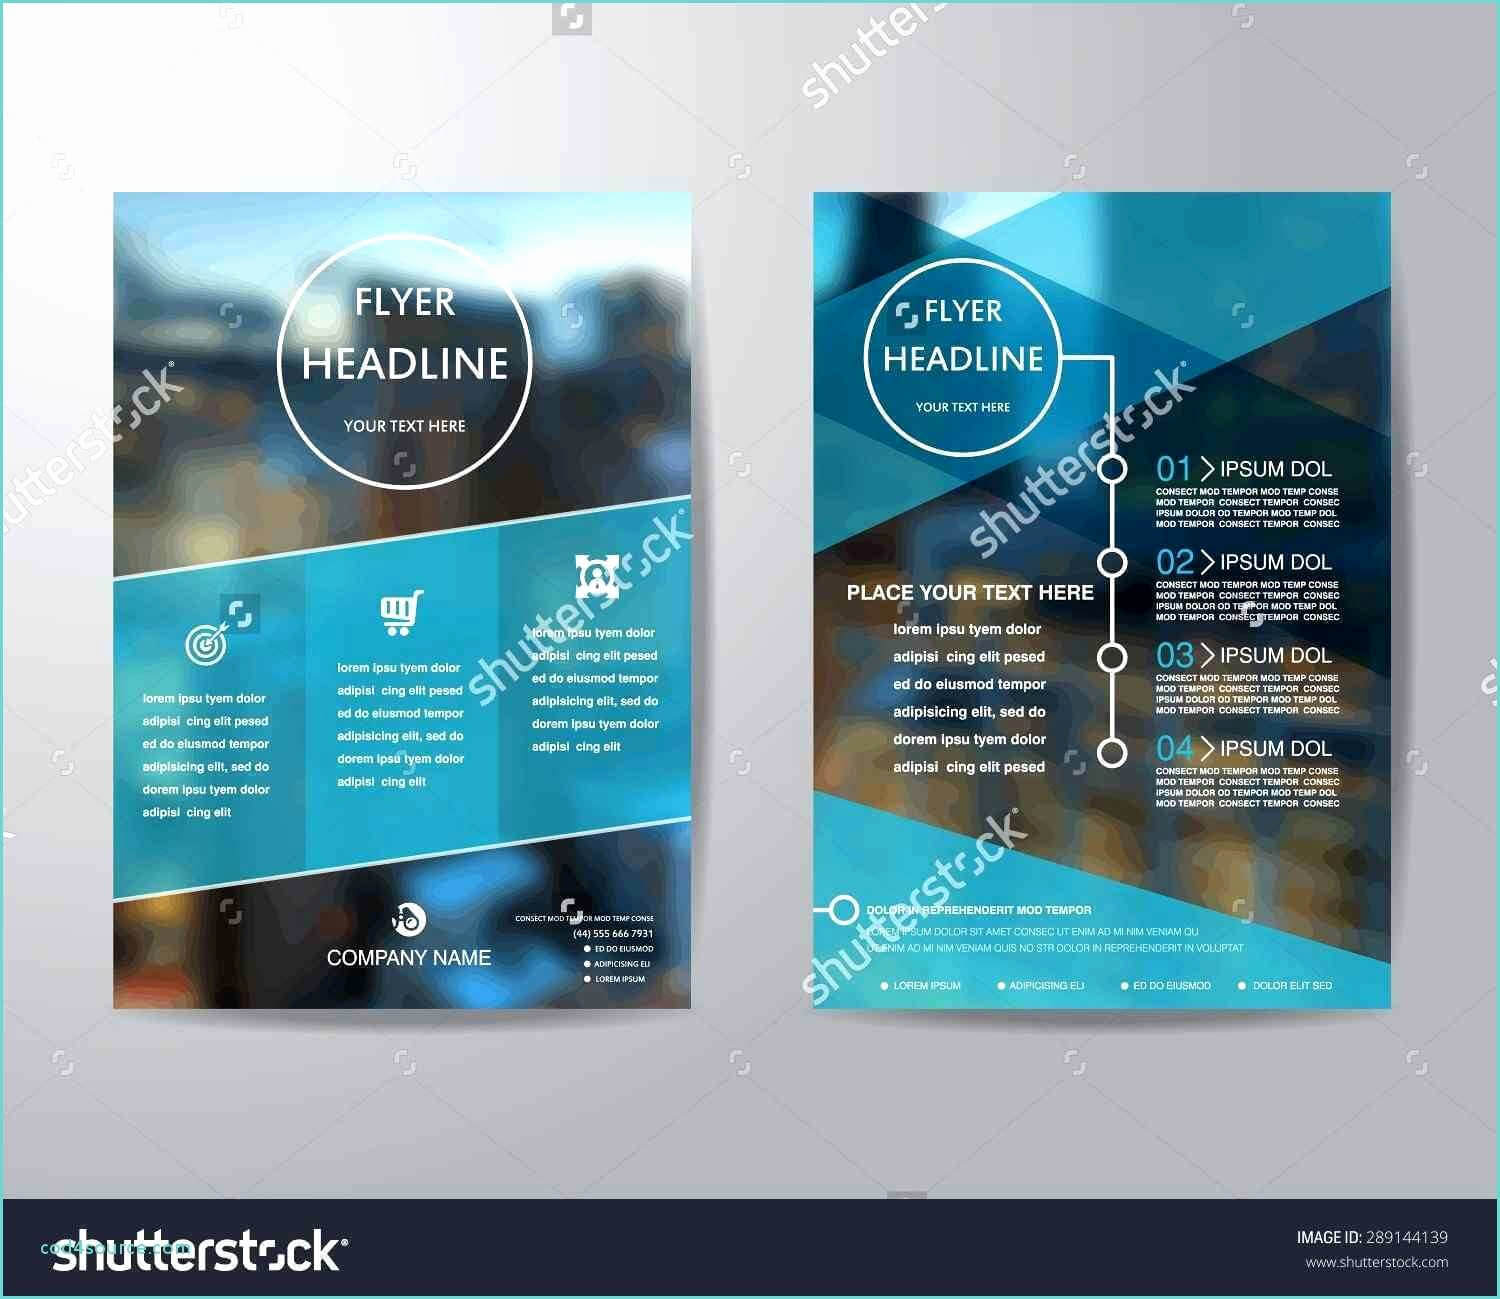 58 Best Of Pictures Of Business Card Template Google Docs Intended For Business Card Template For Google Docs